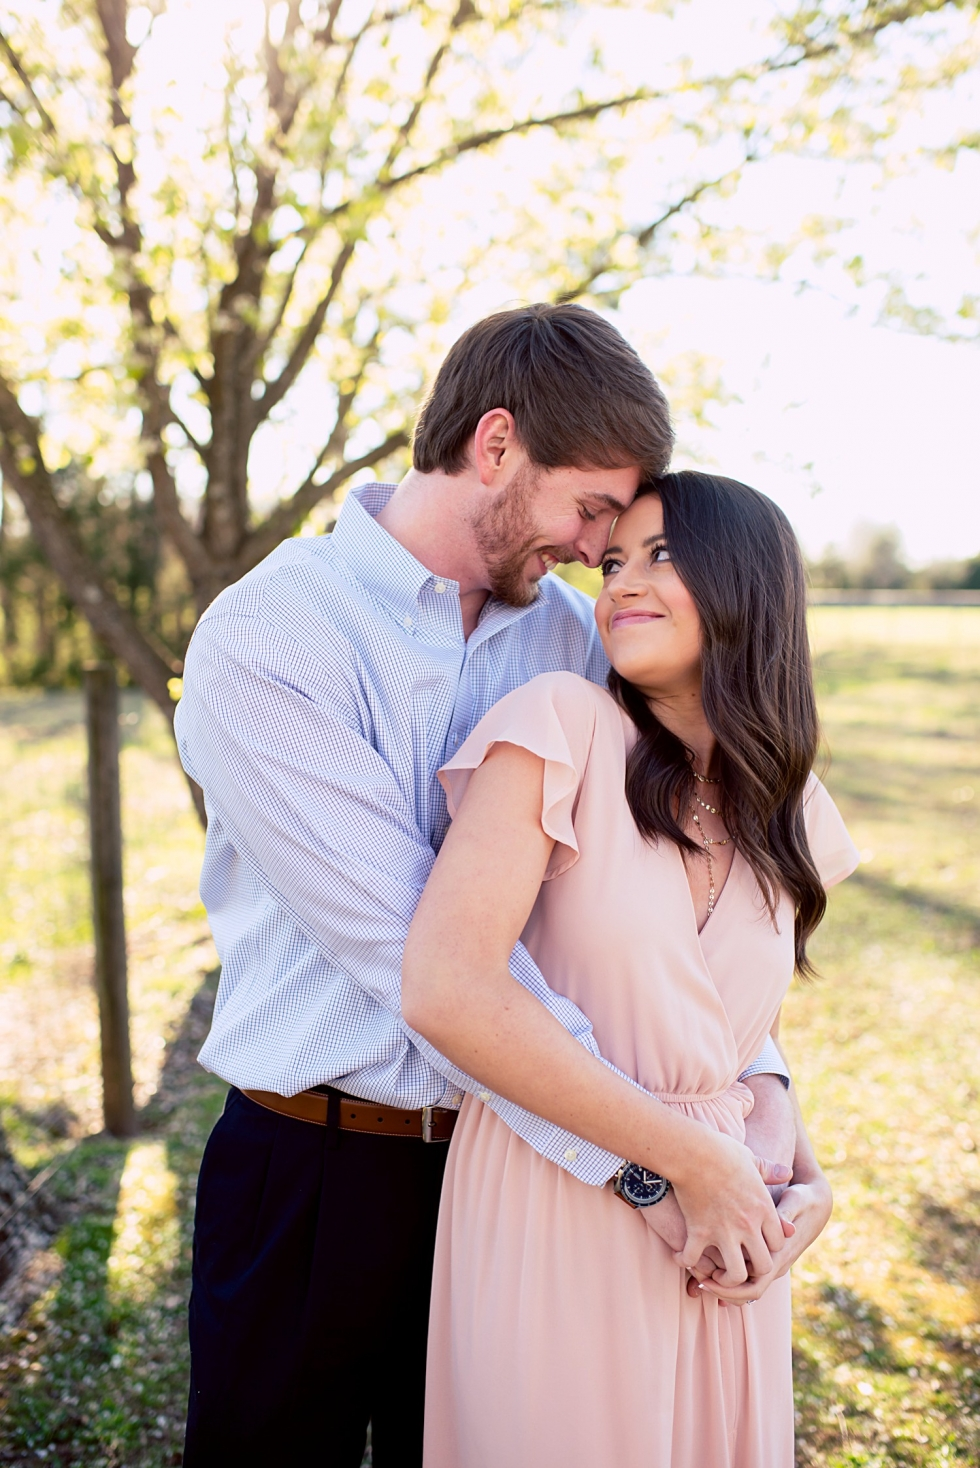 Gorgeous engagement session at Sandy Creek Park in Athens, GA - Athens, GA Wedding & Engagement Photographer